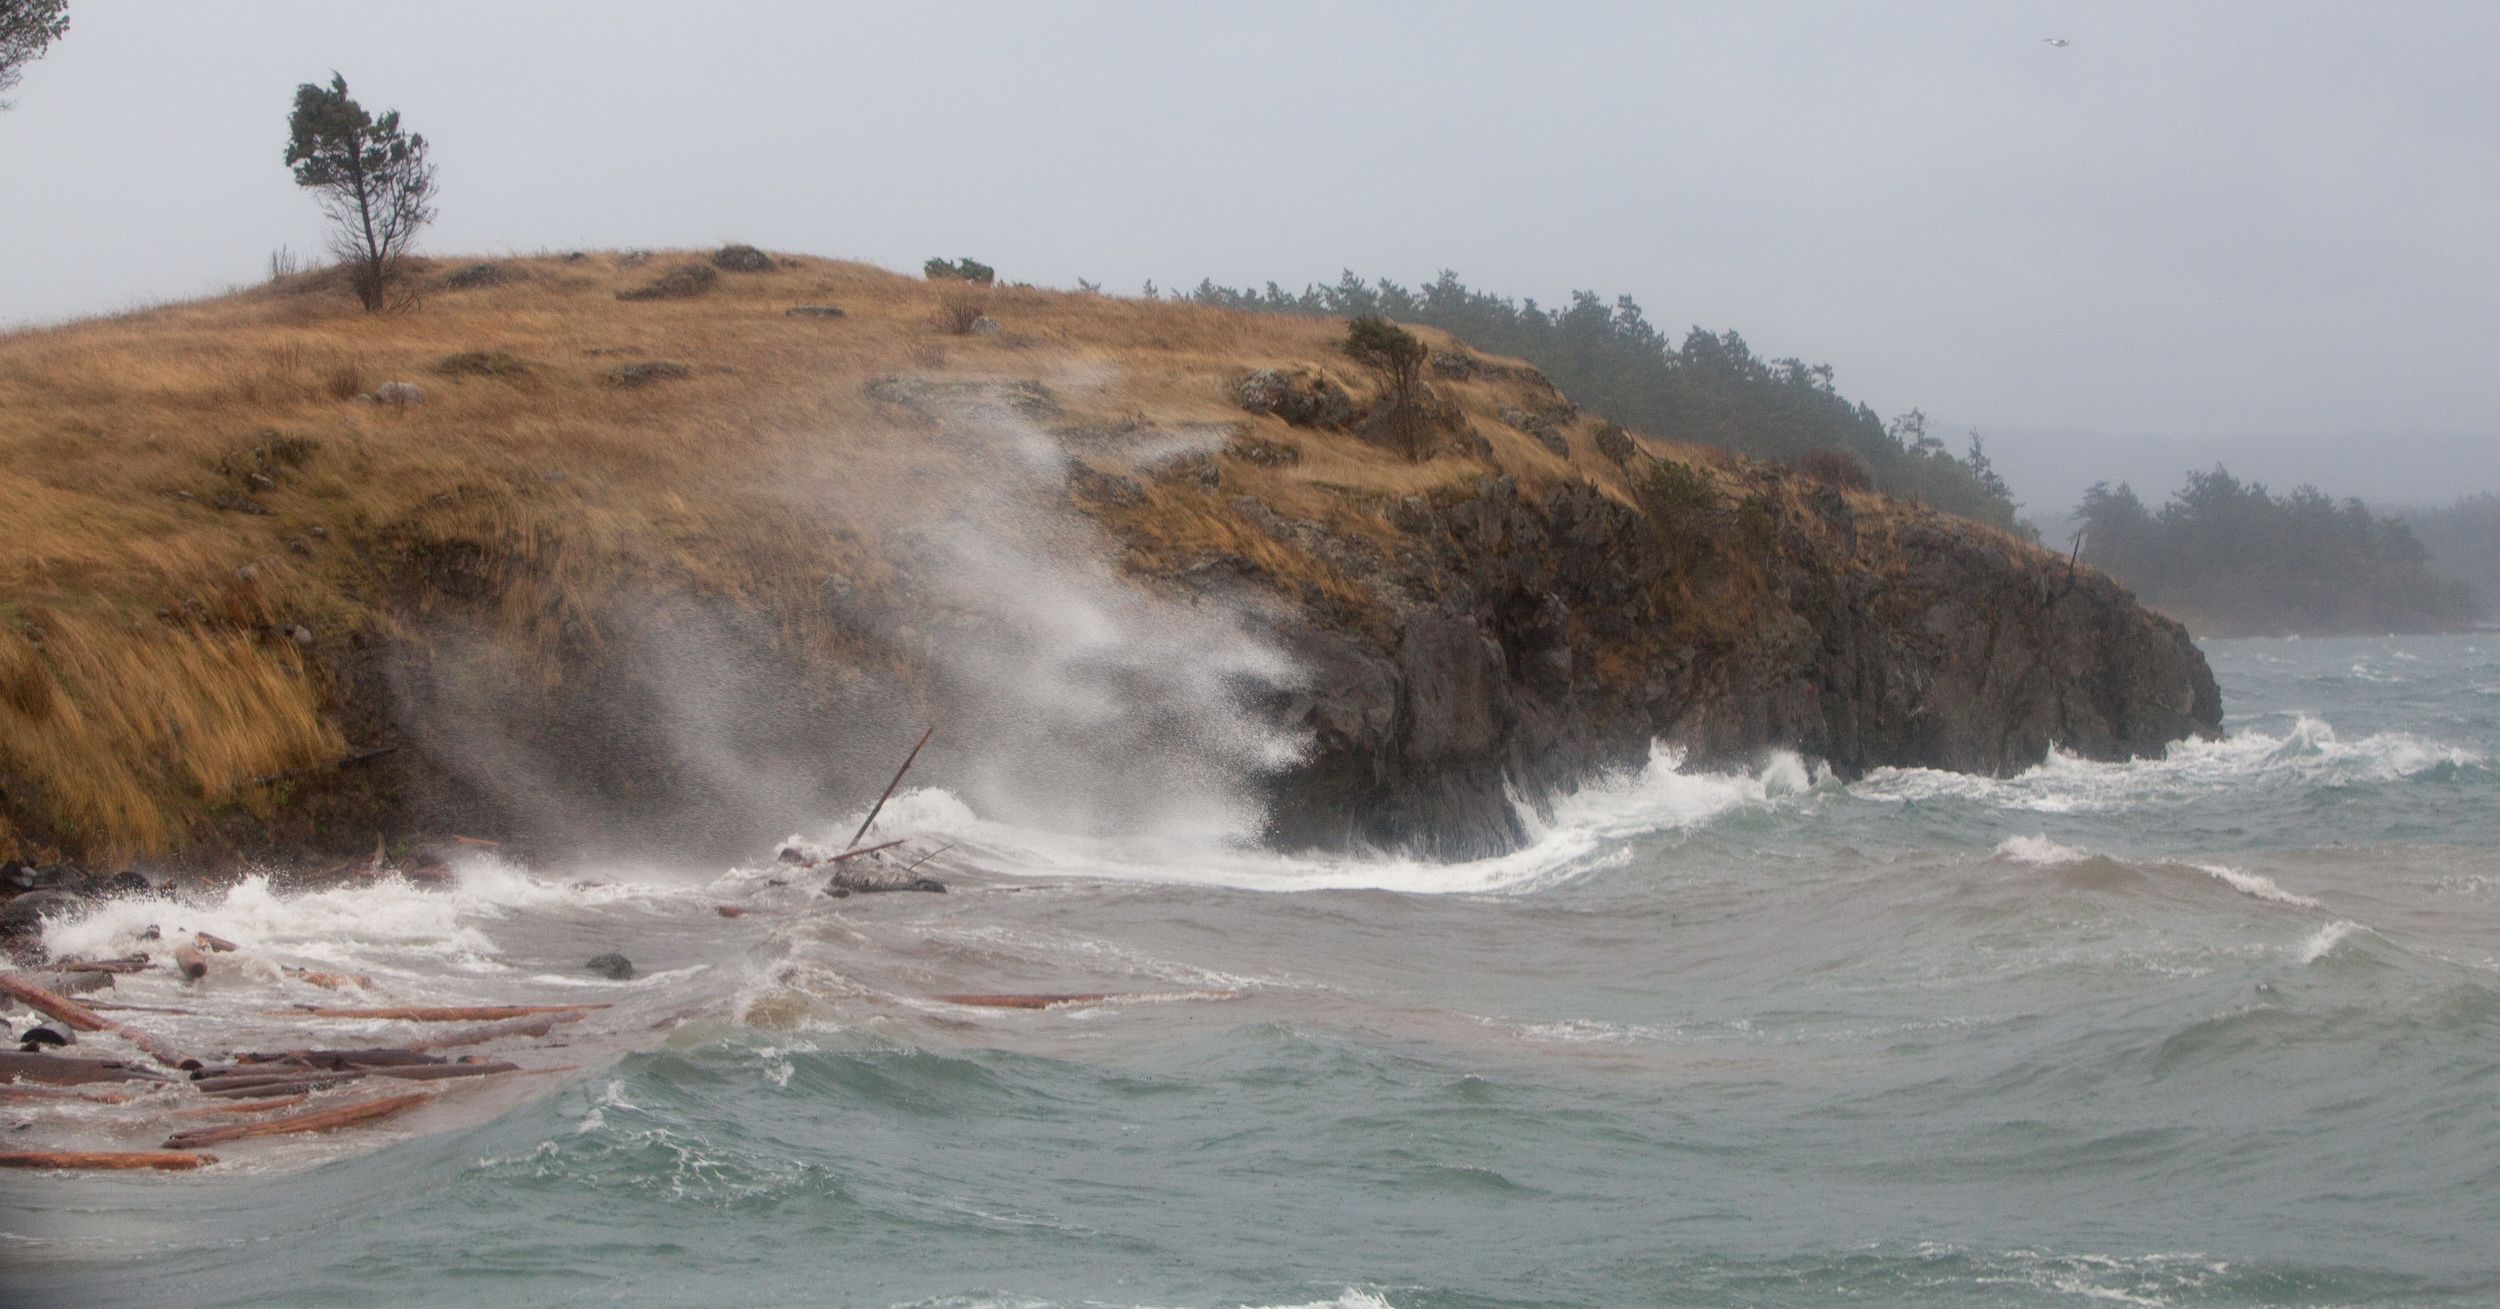 King tides at Yellow Island in 2011. Photo © Phil Green.